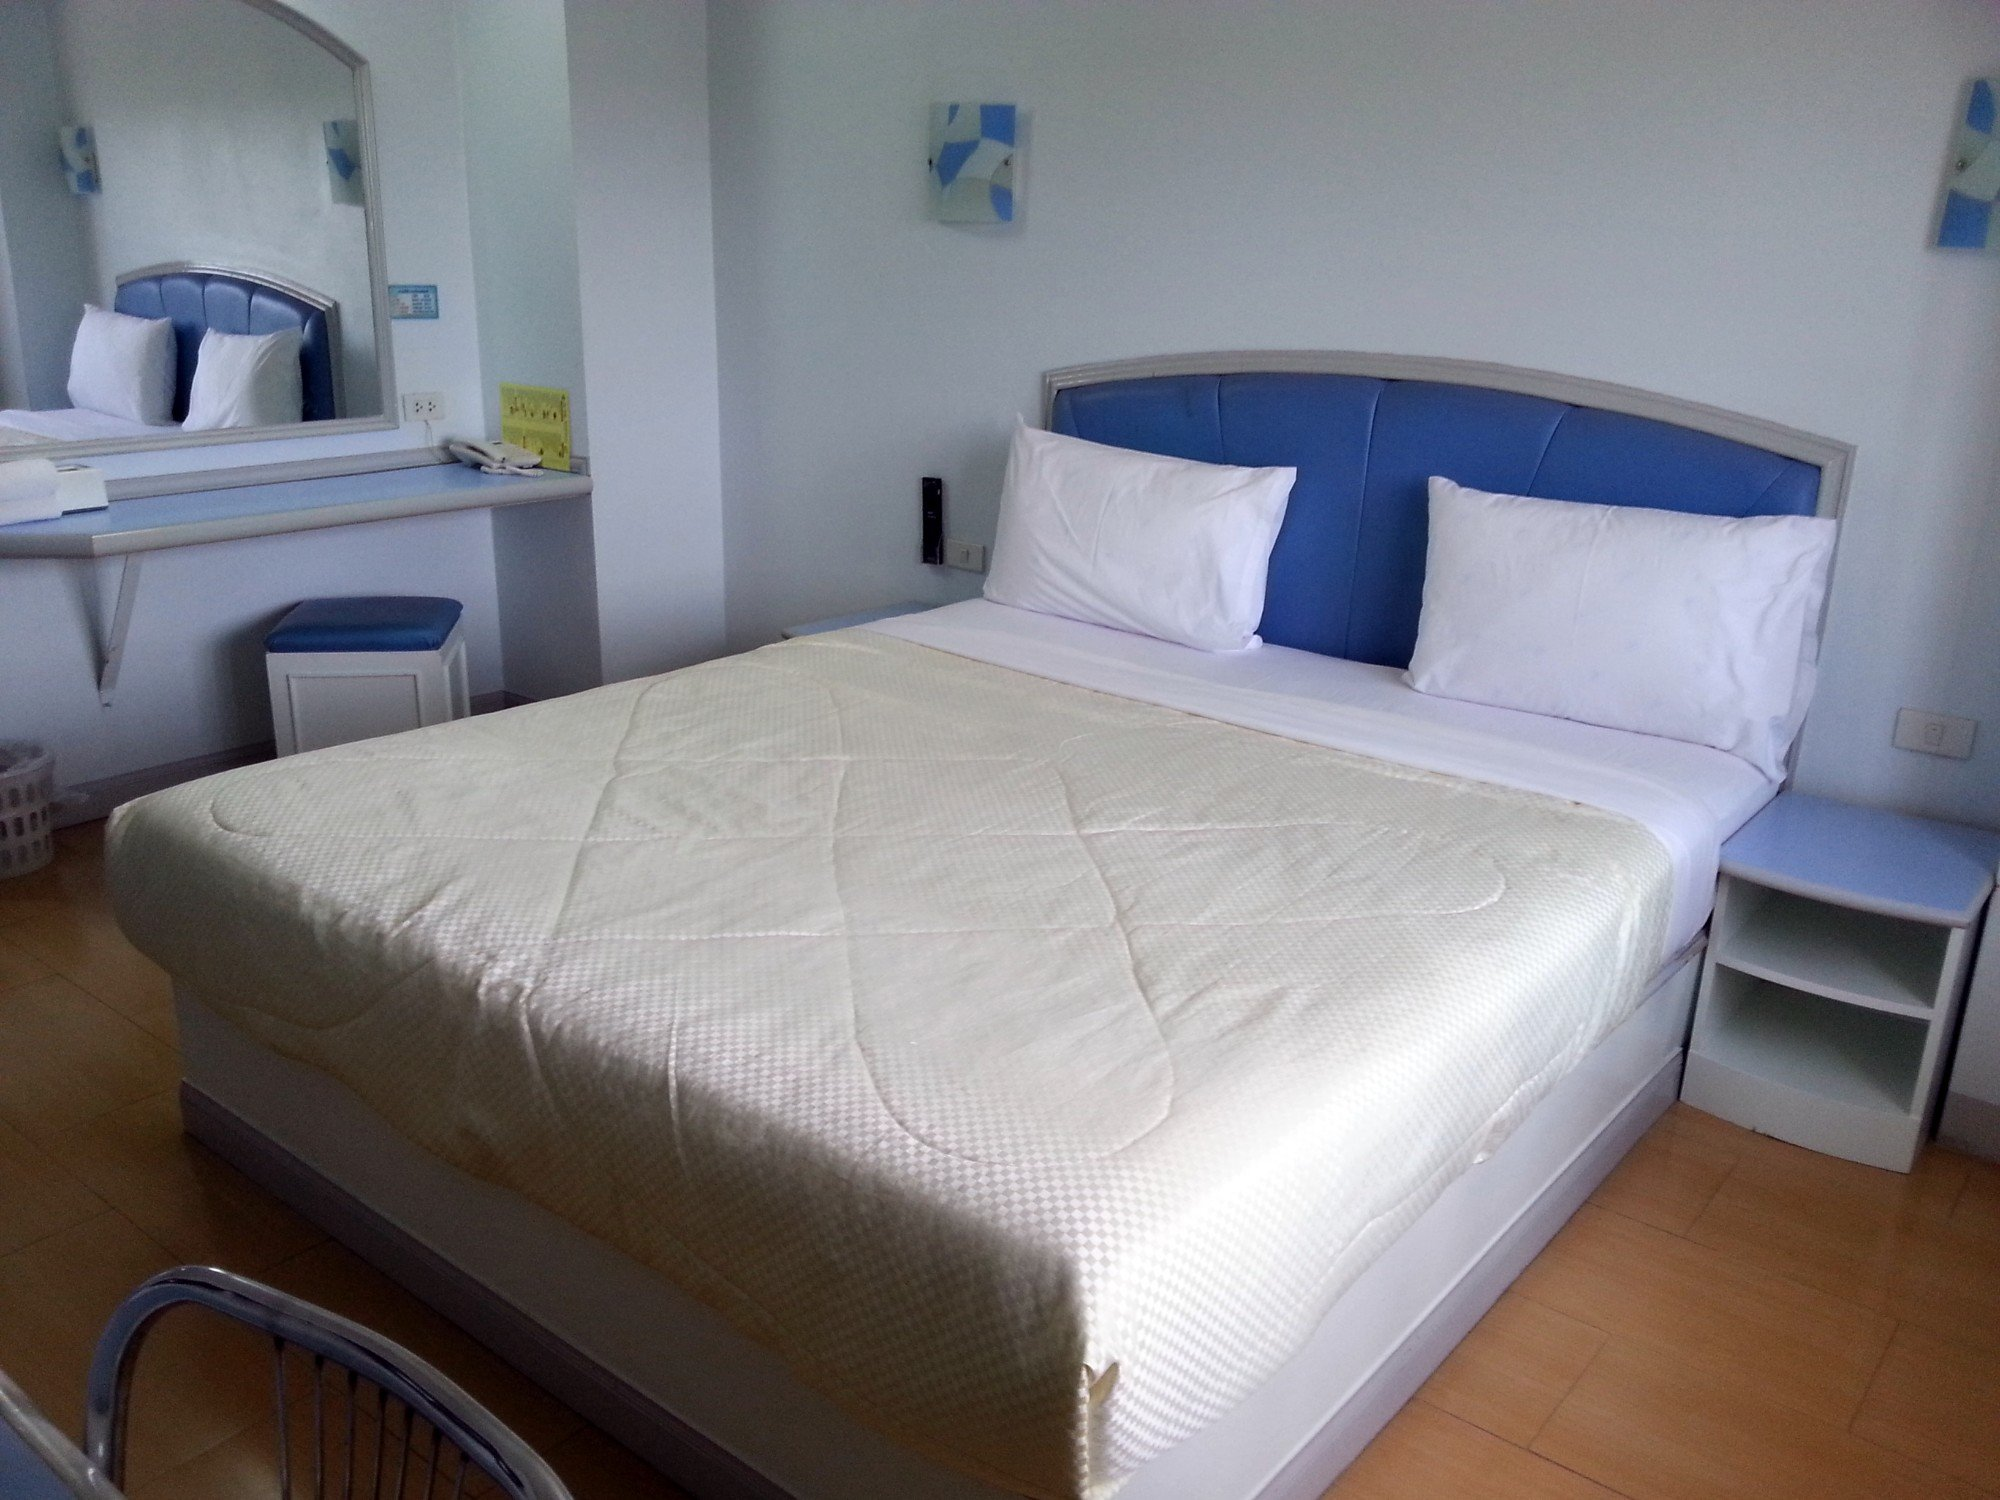 Bed at the P.A. Ville Hotel